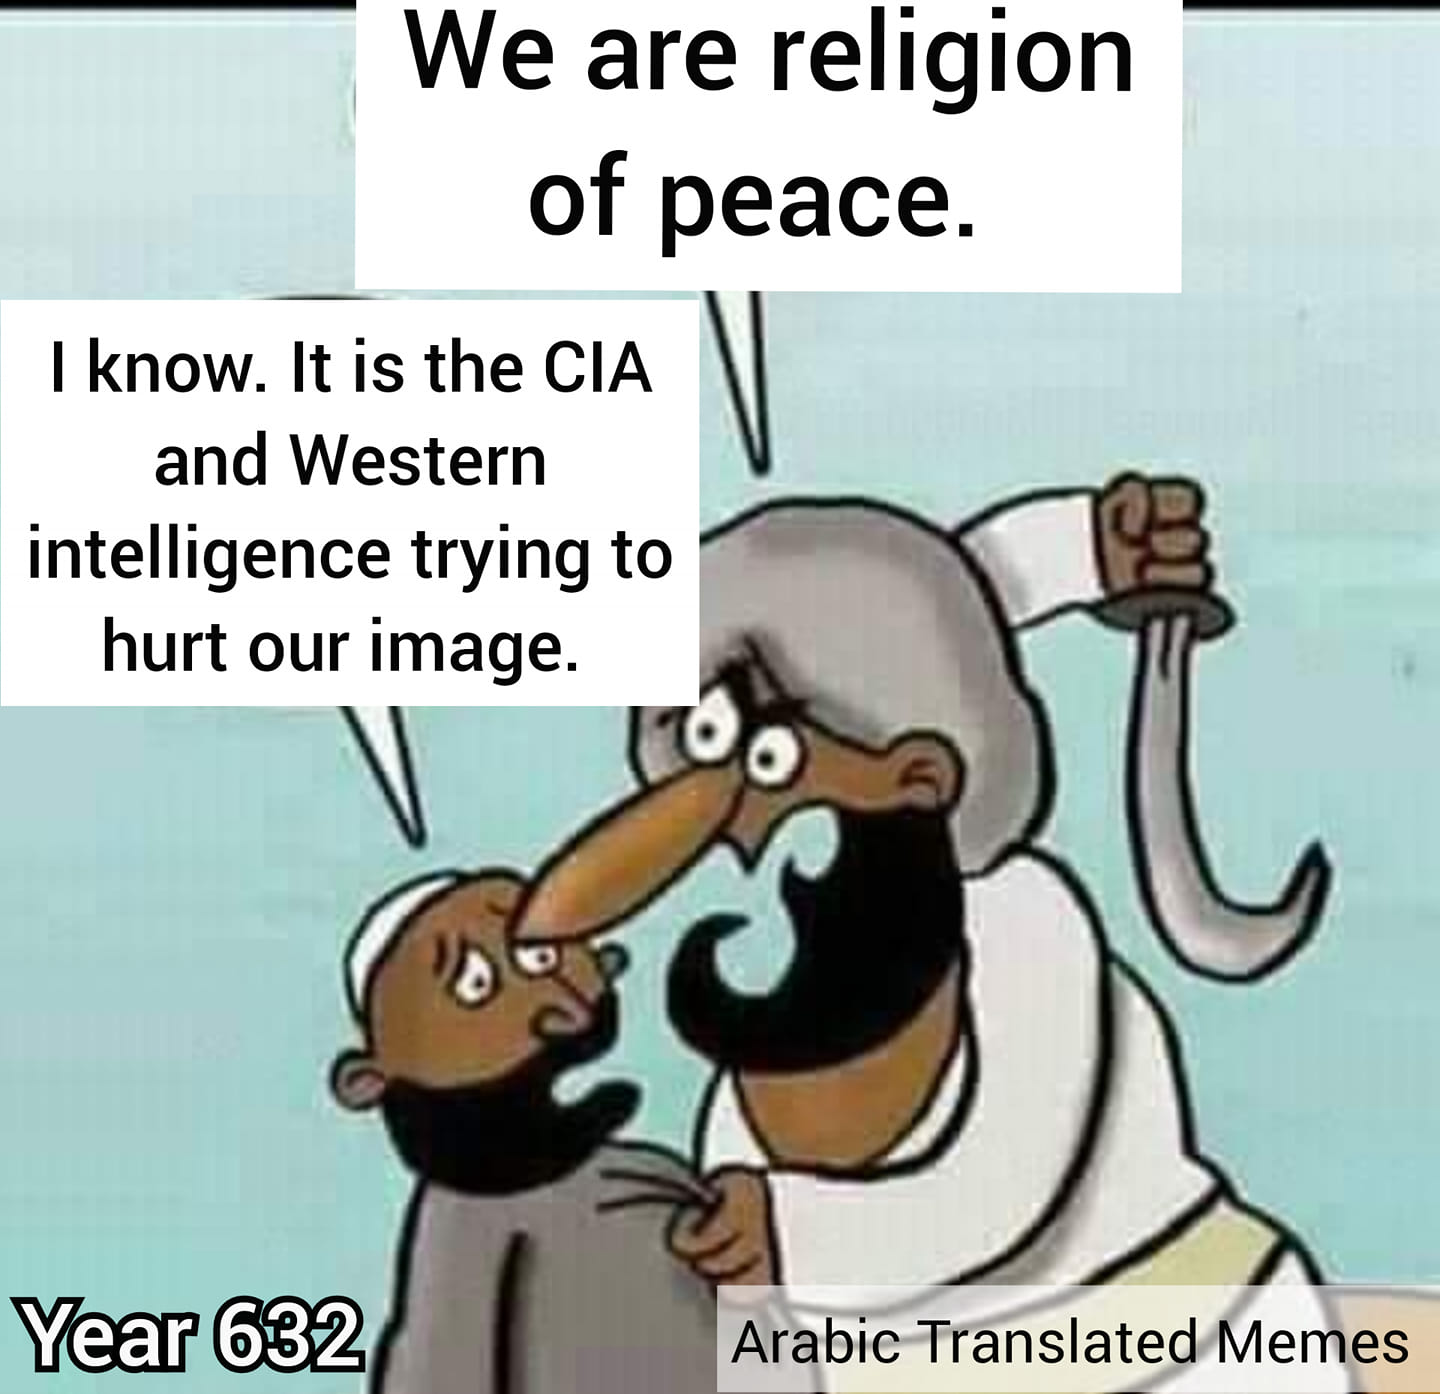 CIA west religion of peace